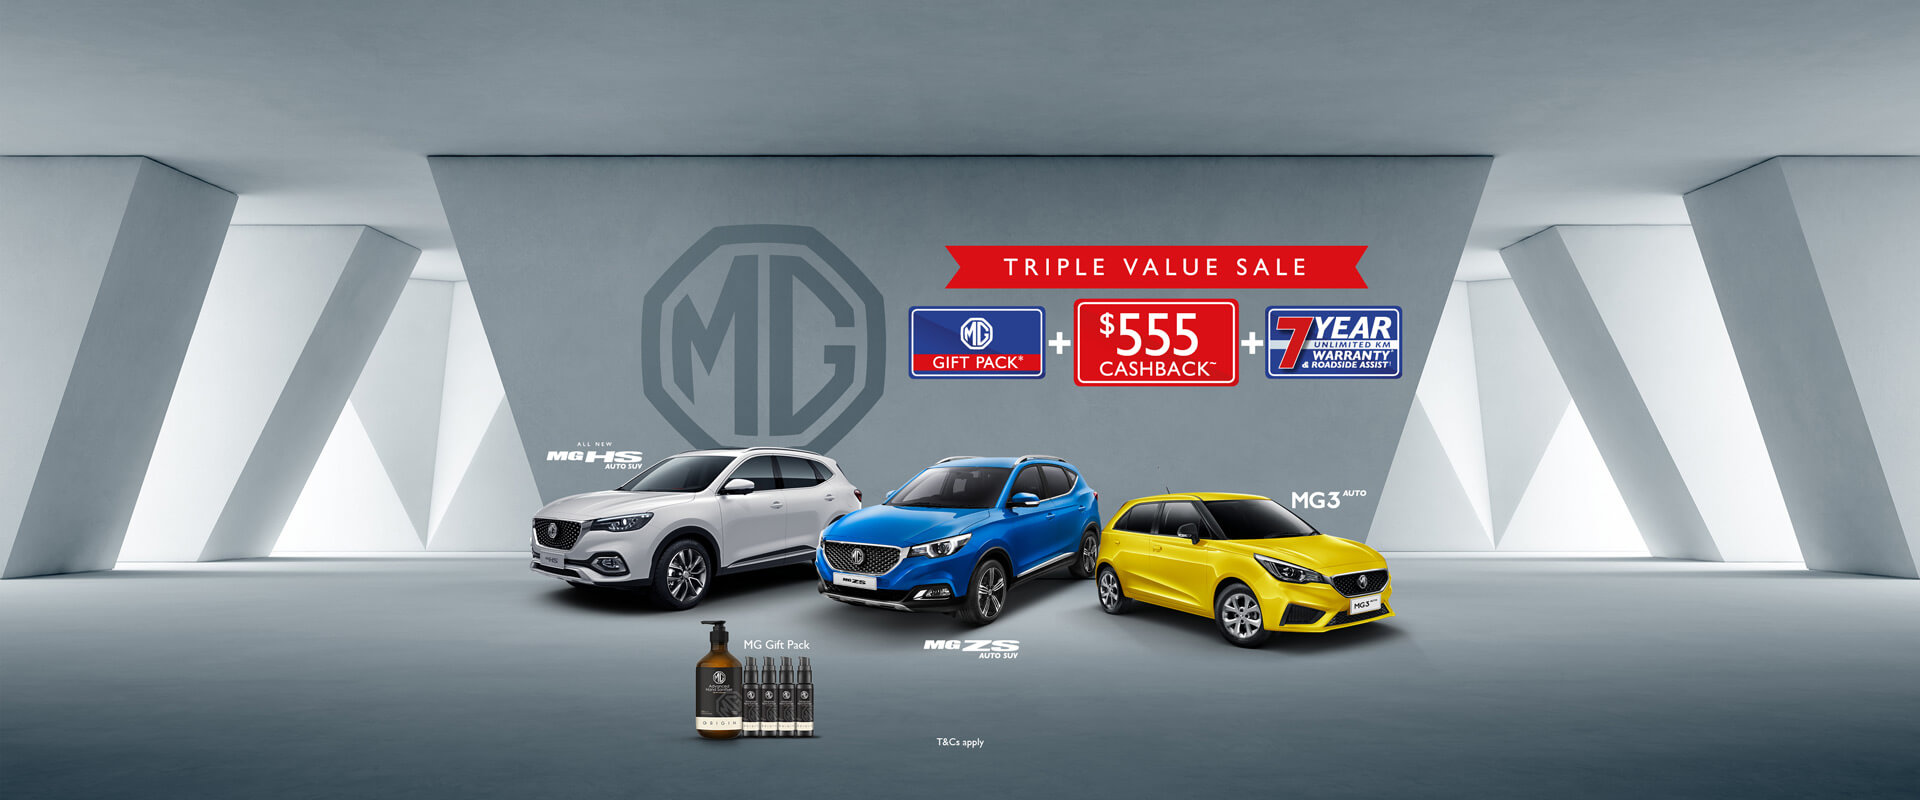 MG - Triple Value